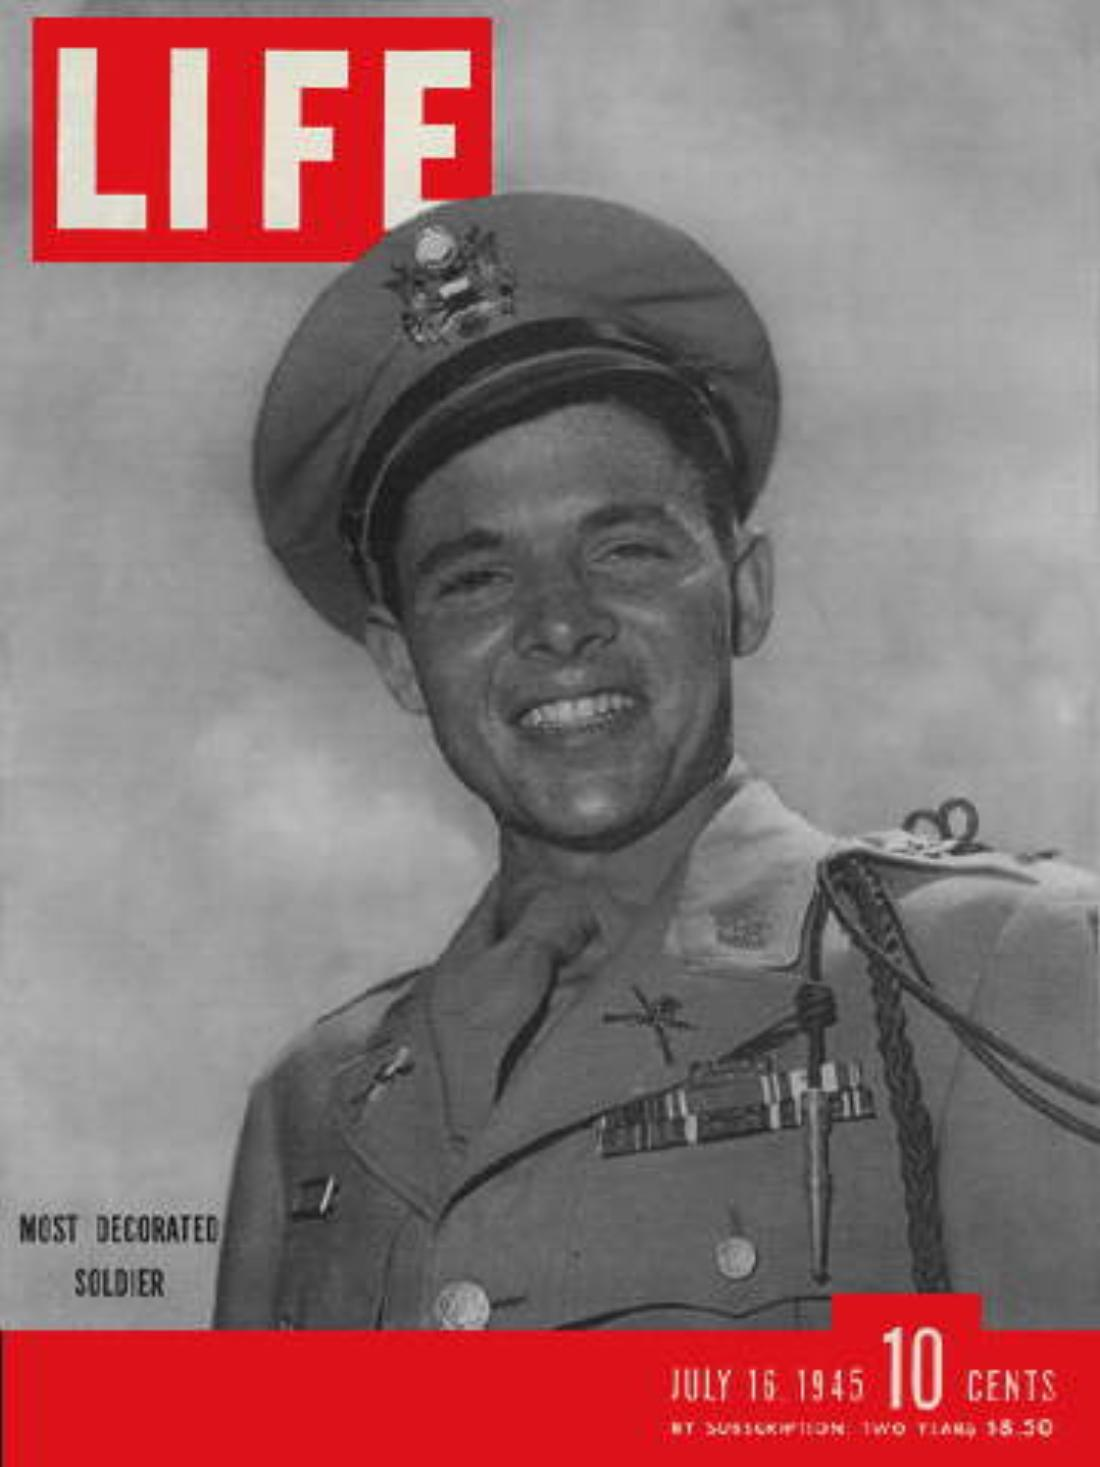 an analysis of audie murohys life story World war ii history will always recall one of its greatest heroes: audie murphy his military exploits and courage were legendary, and became the subject of a hollywood film when he returned to america after the war, murphy found success as an actor and screenwriter.